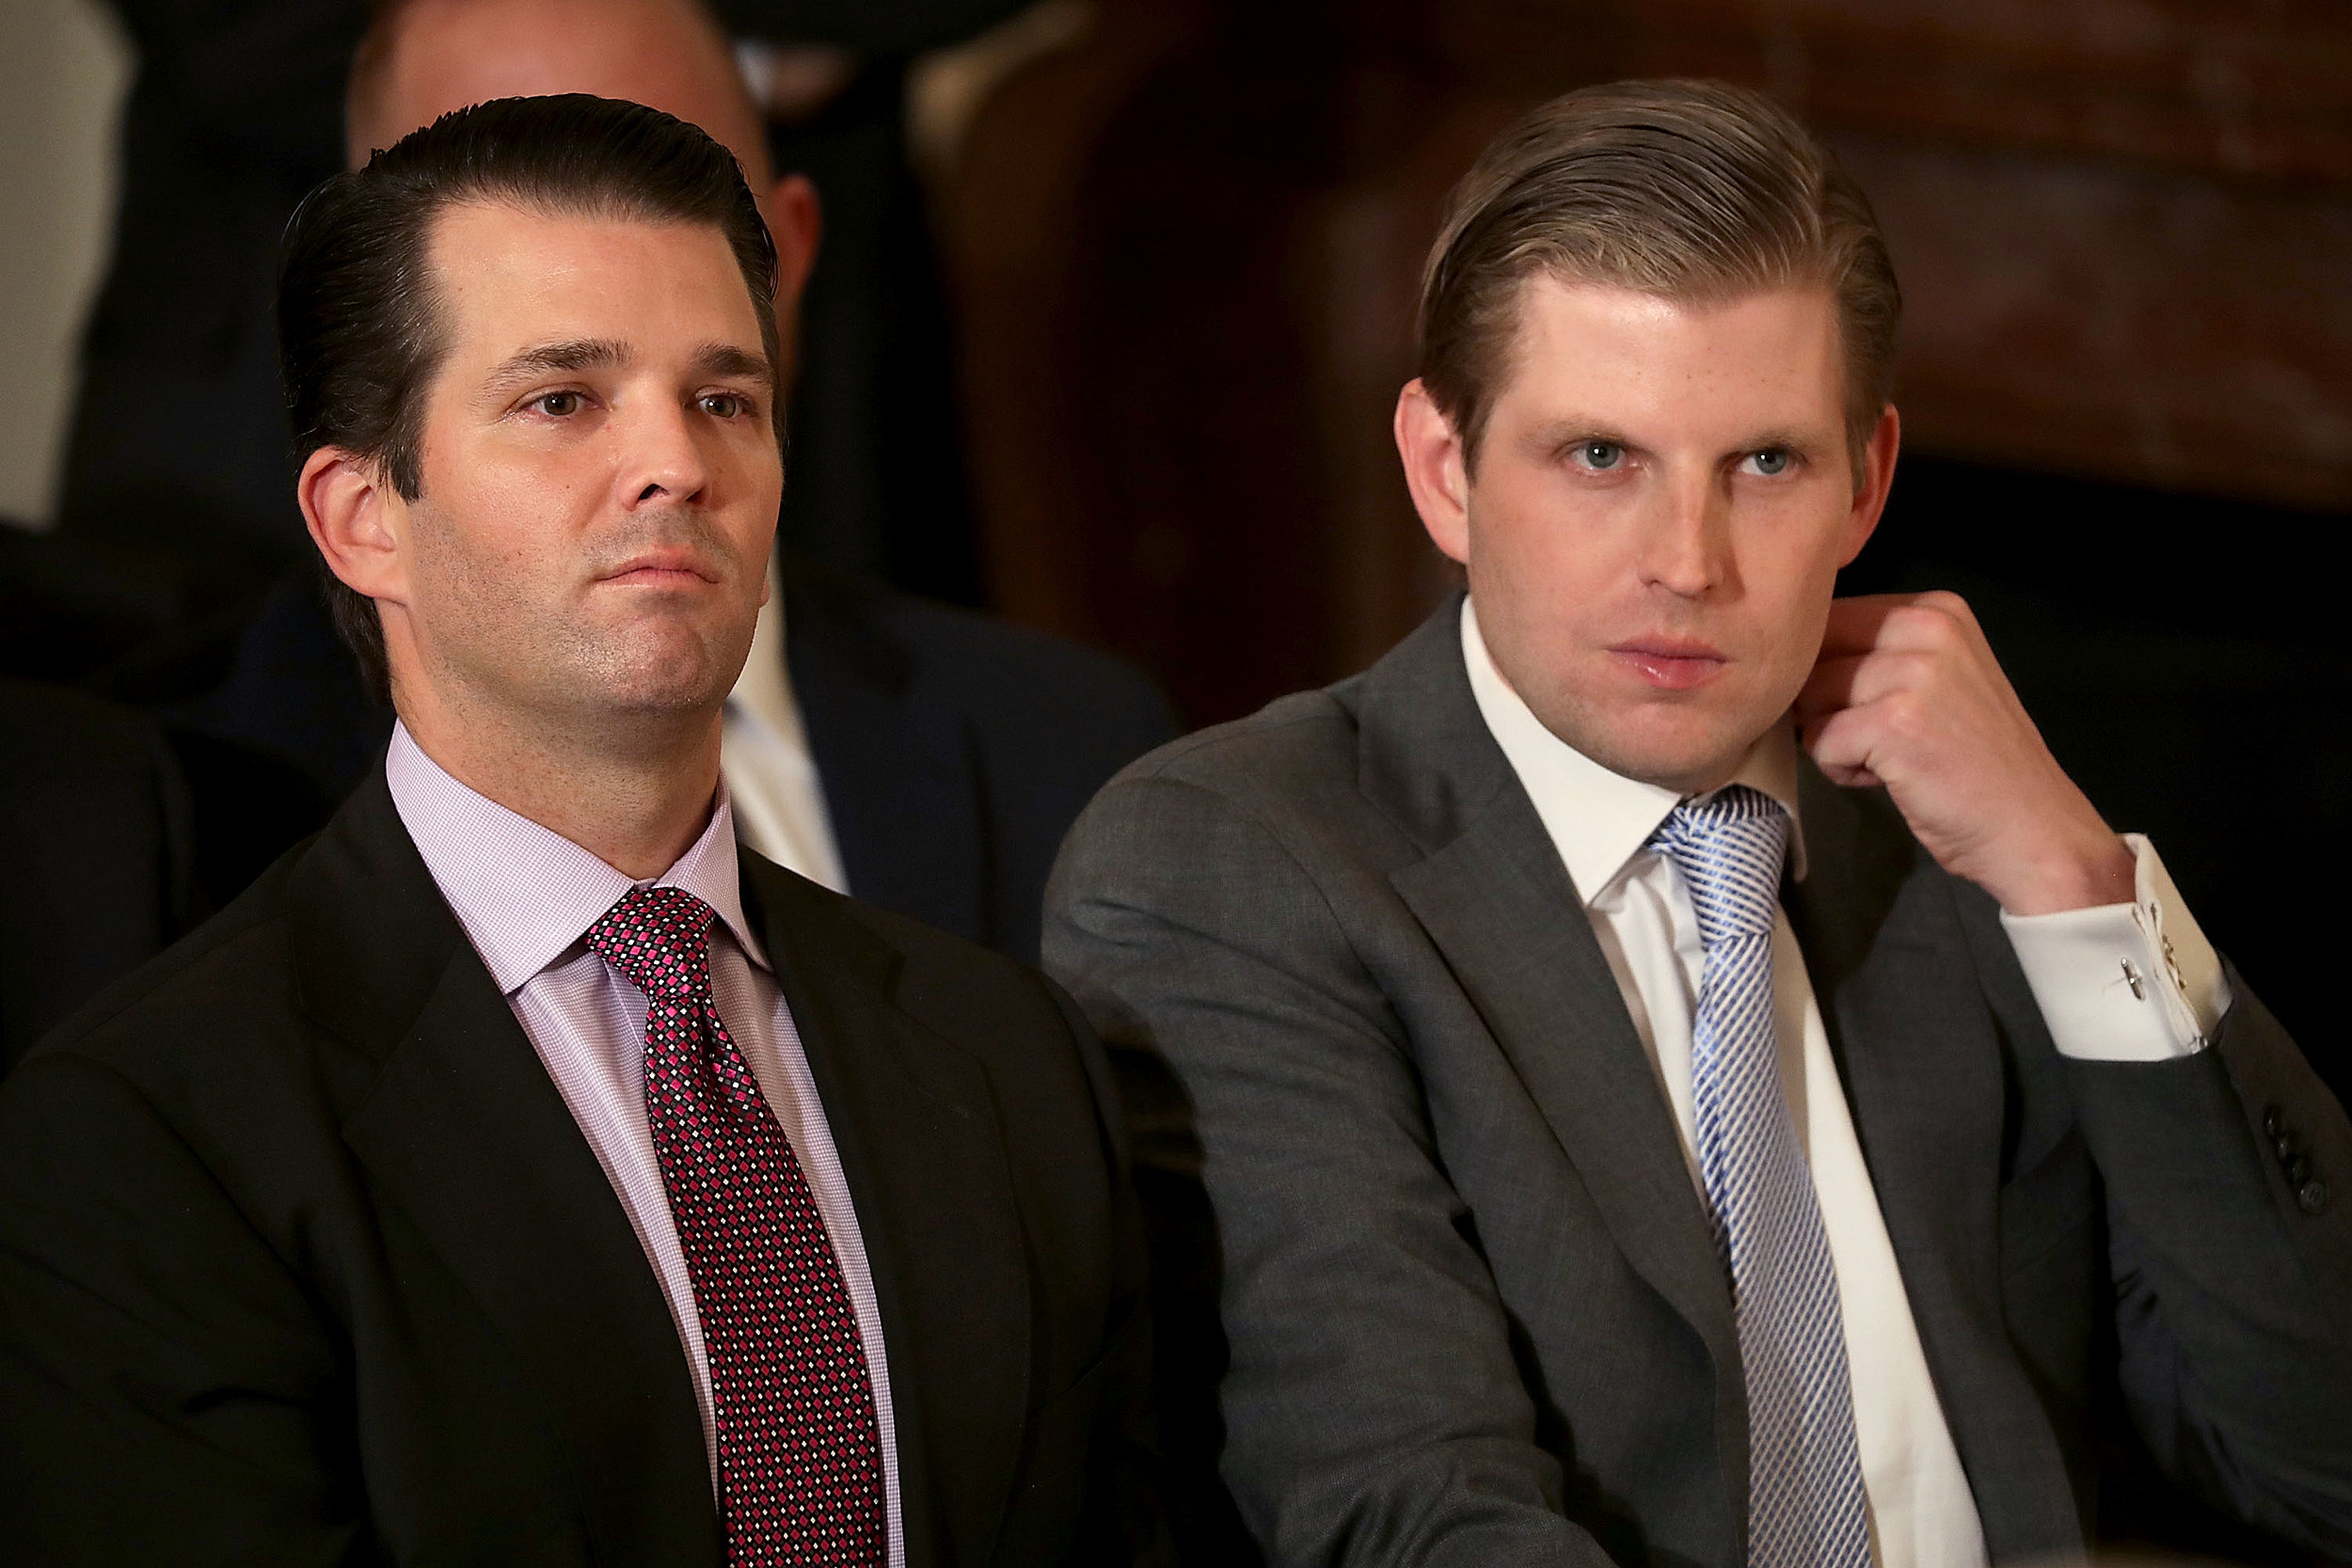 Russian lawyer who met Donald Trump's son willing to give evidence